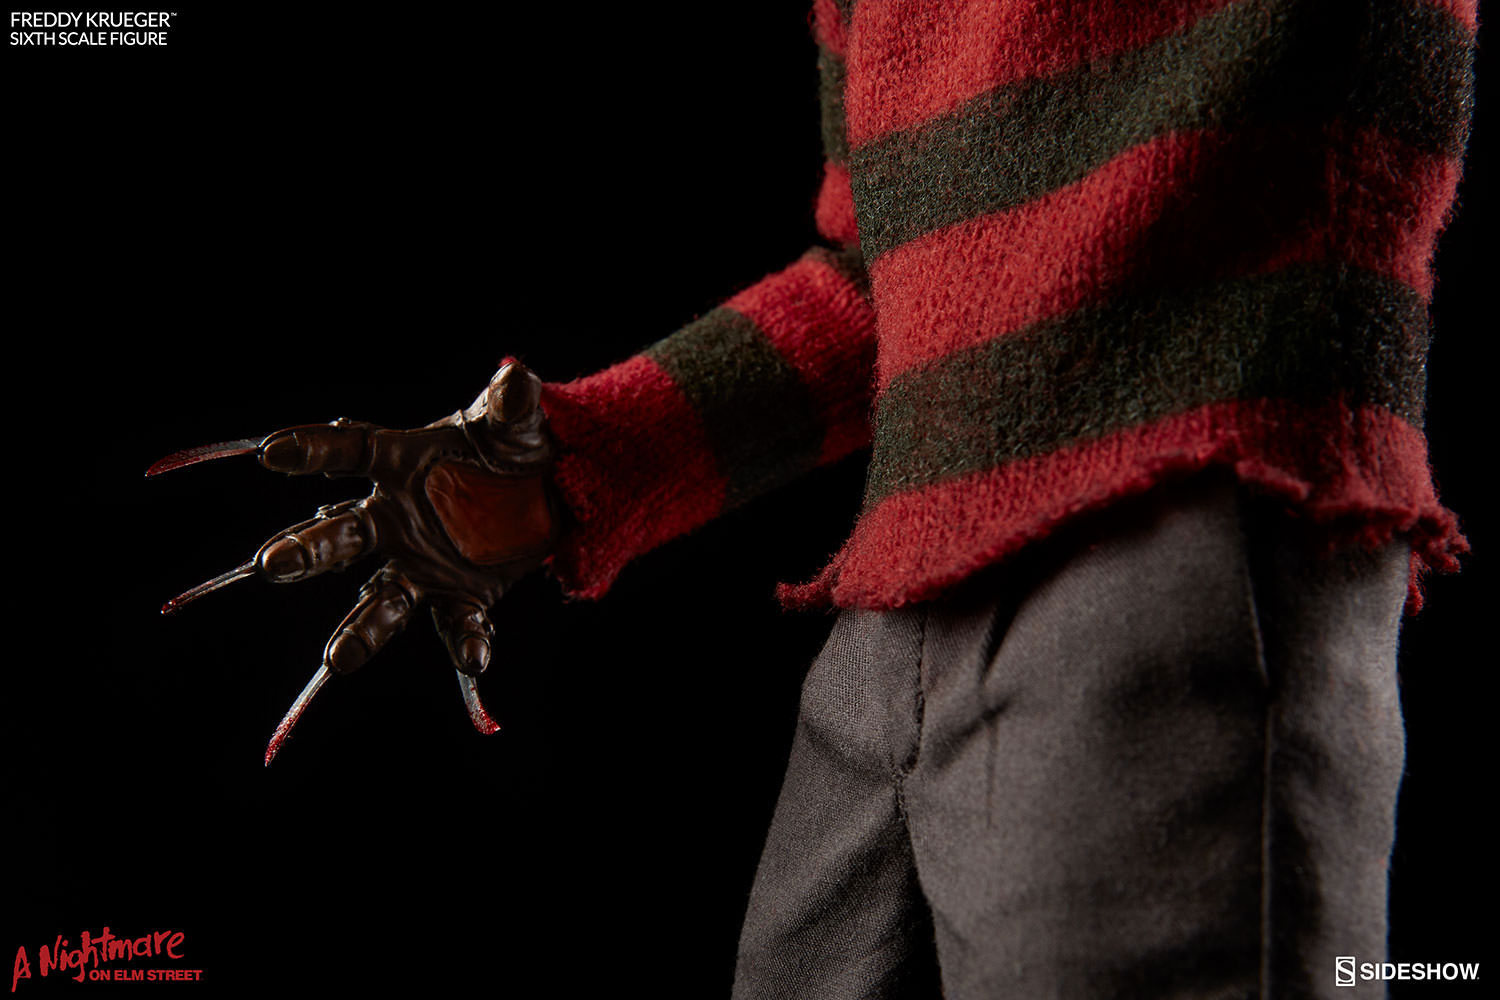 sideshow-nightmare-on-elm-street-freddy-krueger-sixth-scale-fgure-7